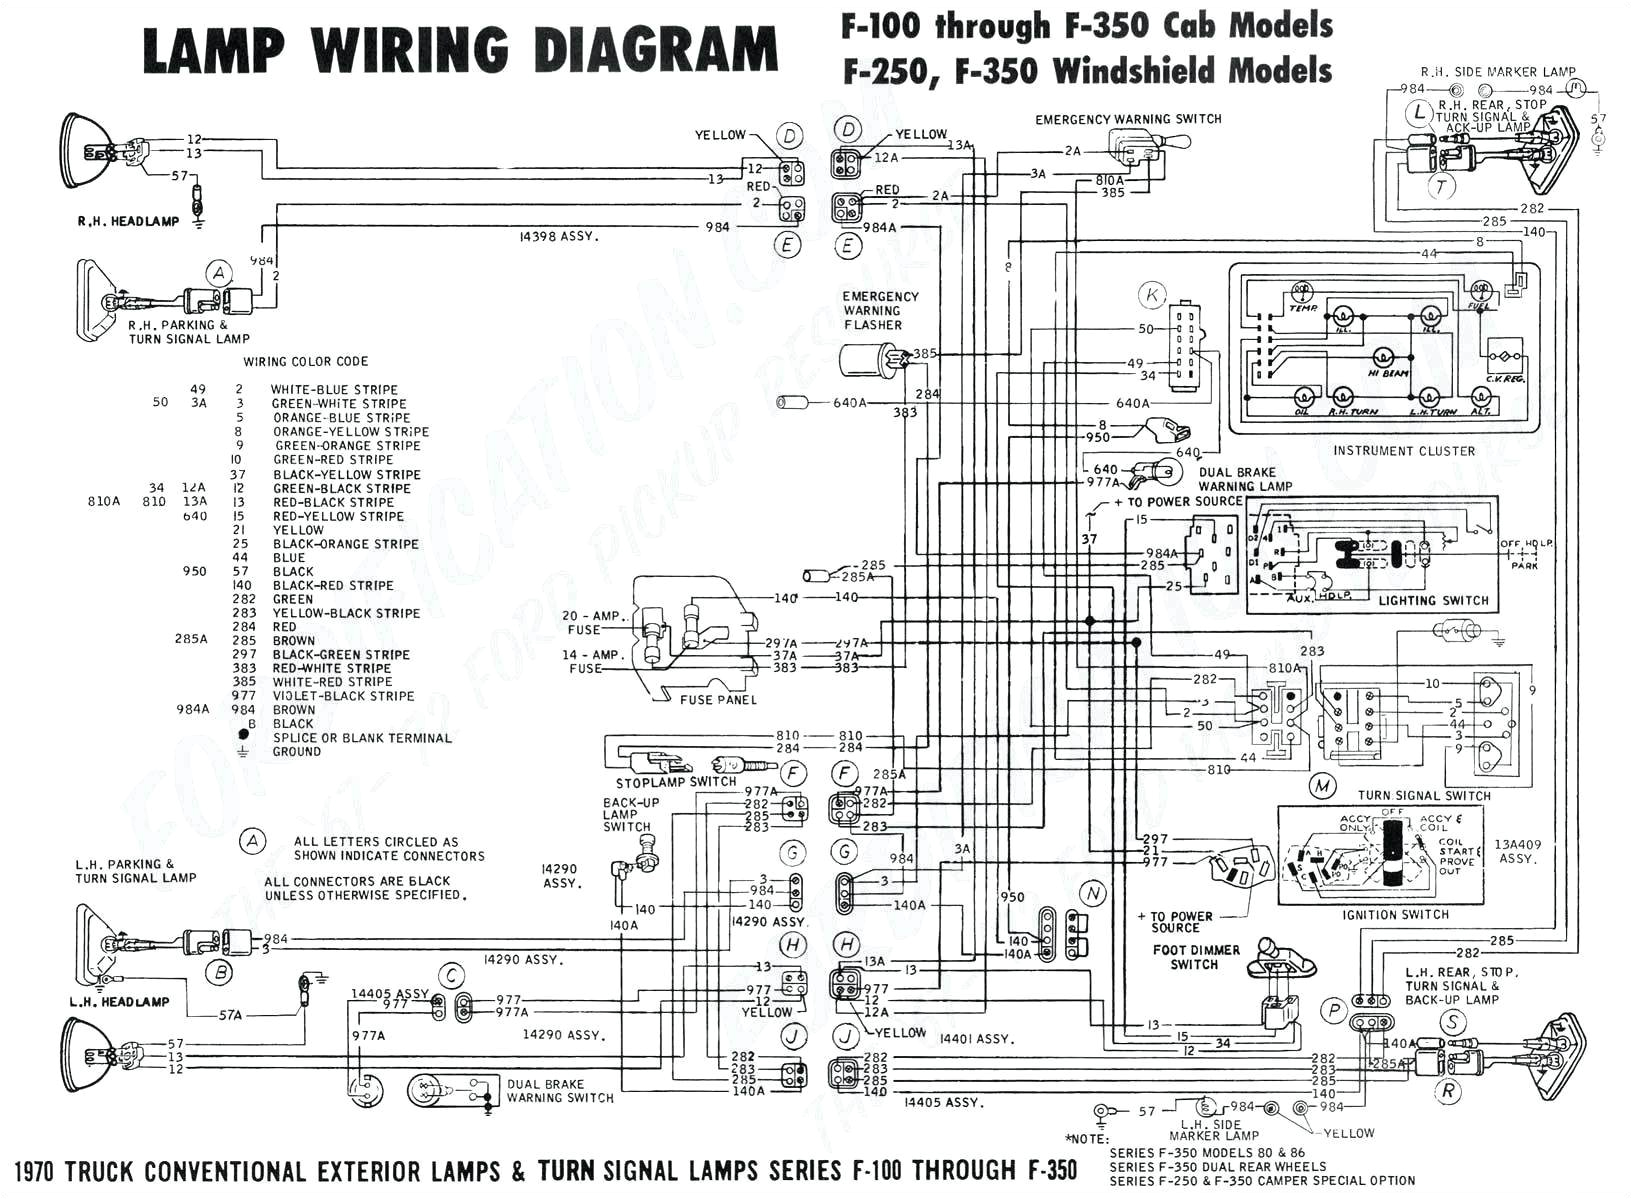 64 ford f100 headlight wiring wiring diagram operations 1964 ford truck f100 s wiring diagram automotive